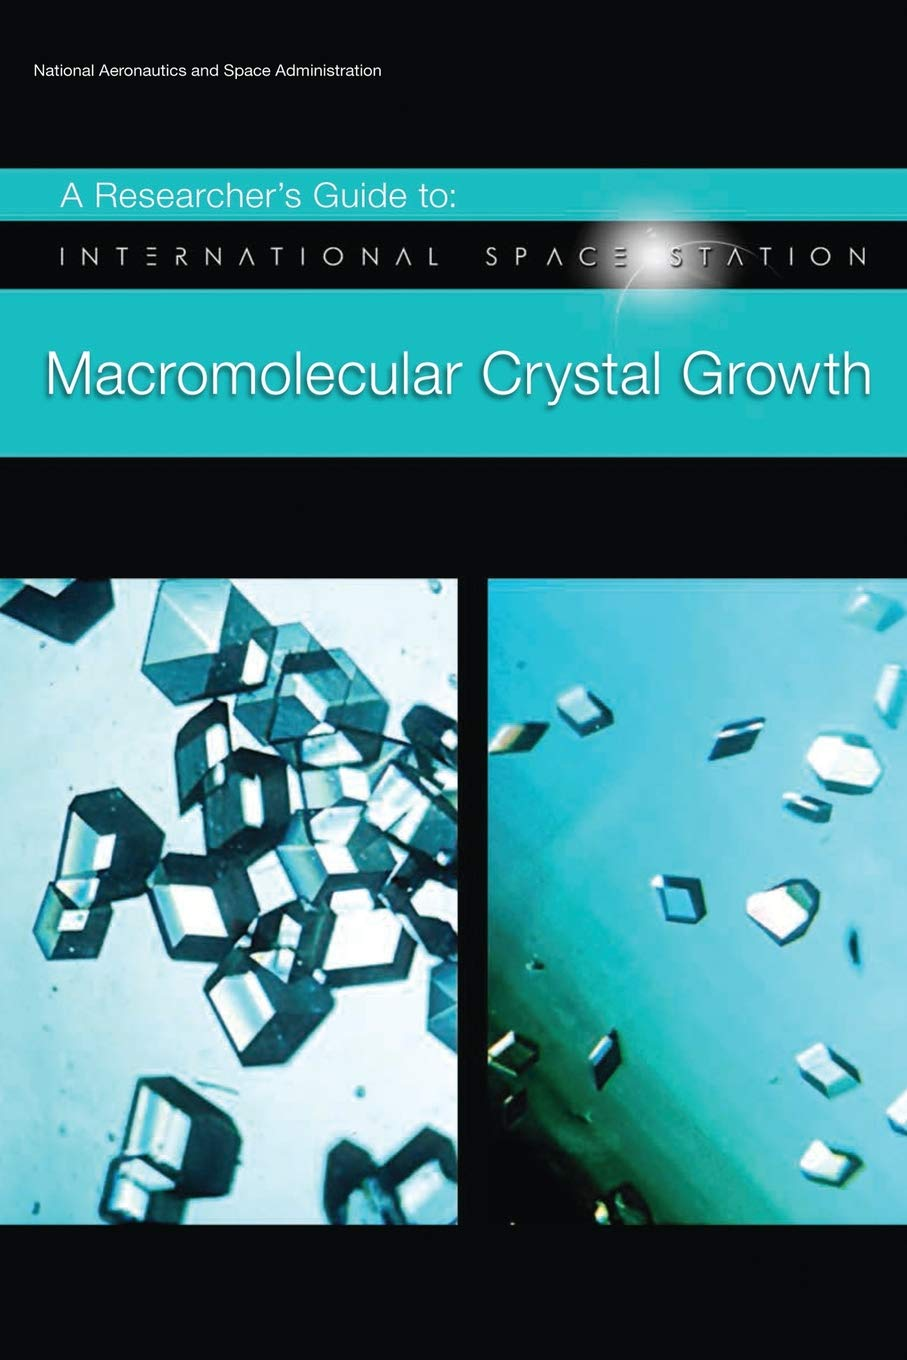 A Researcher's Guide to: International Space Station - Macromolecular Crystal Growth